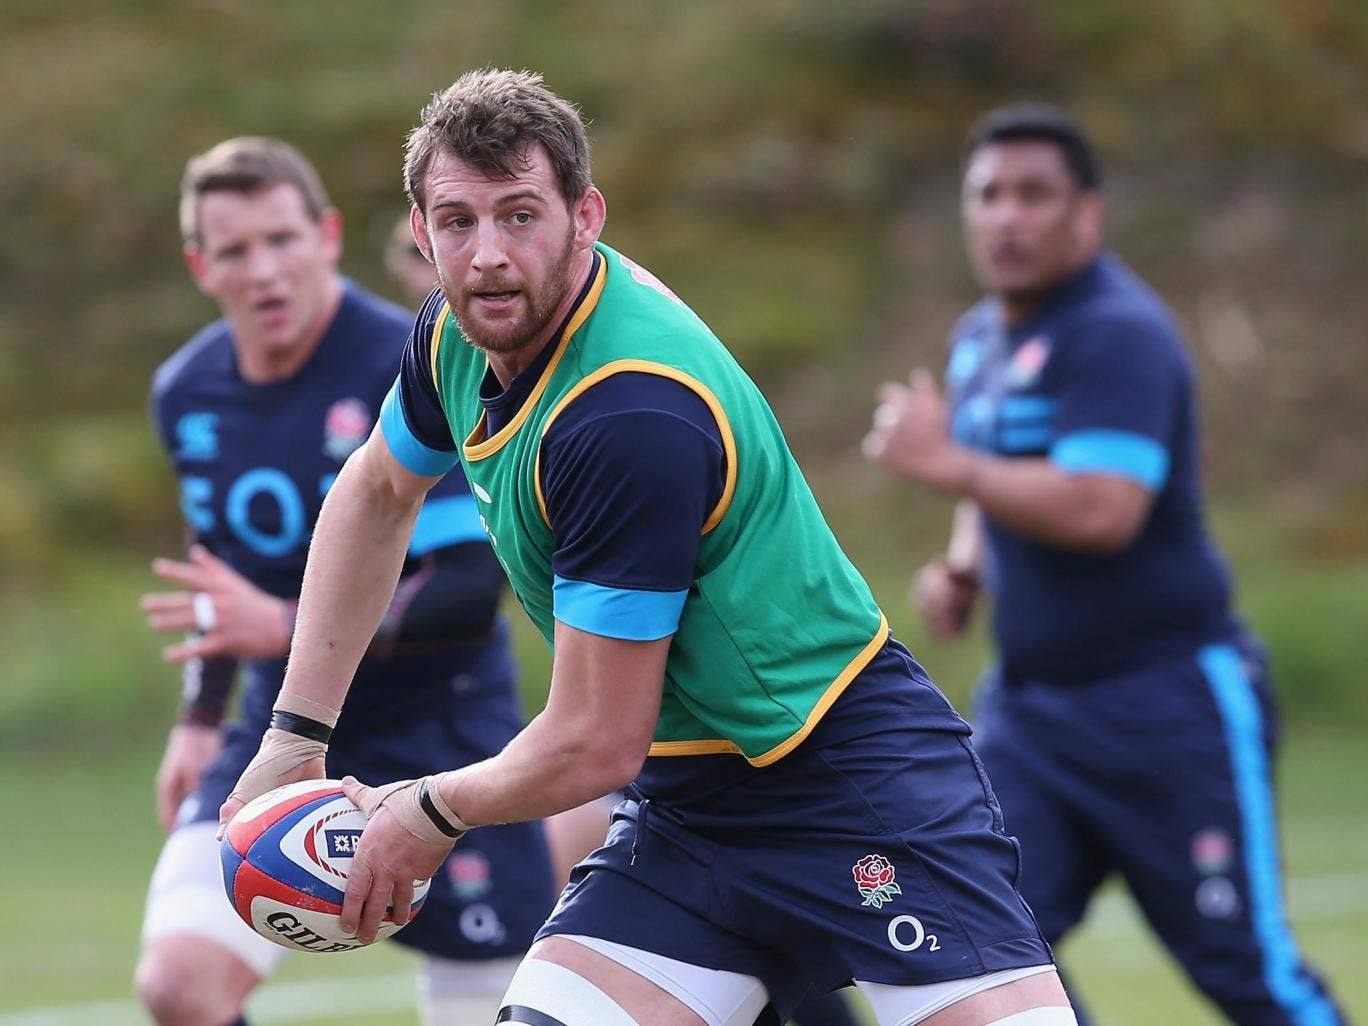 Tom Wood in training with England ahead of this weekend's Six Nations confrontation with Wales at Twickenham